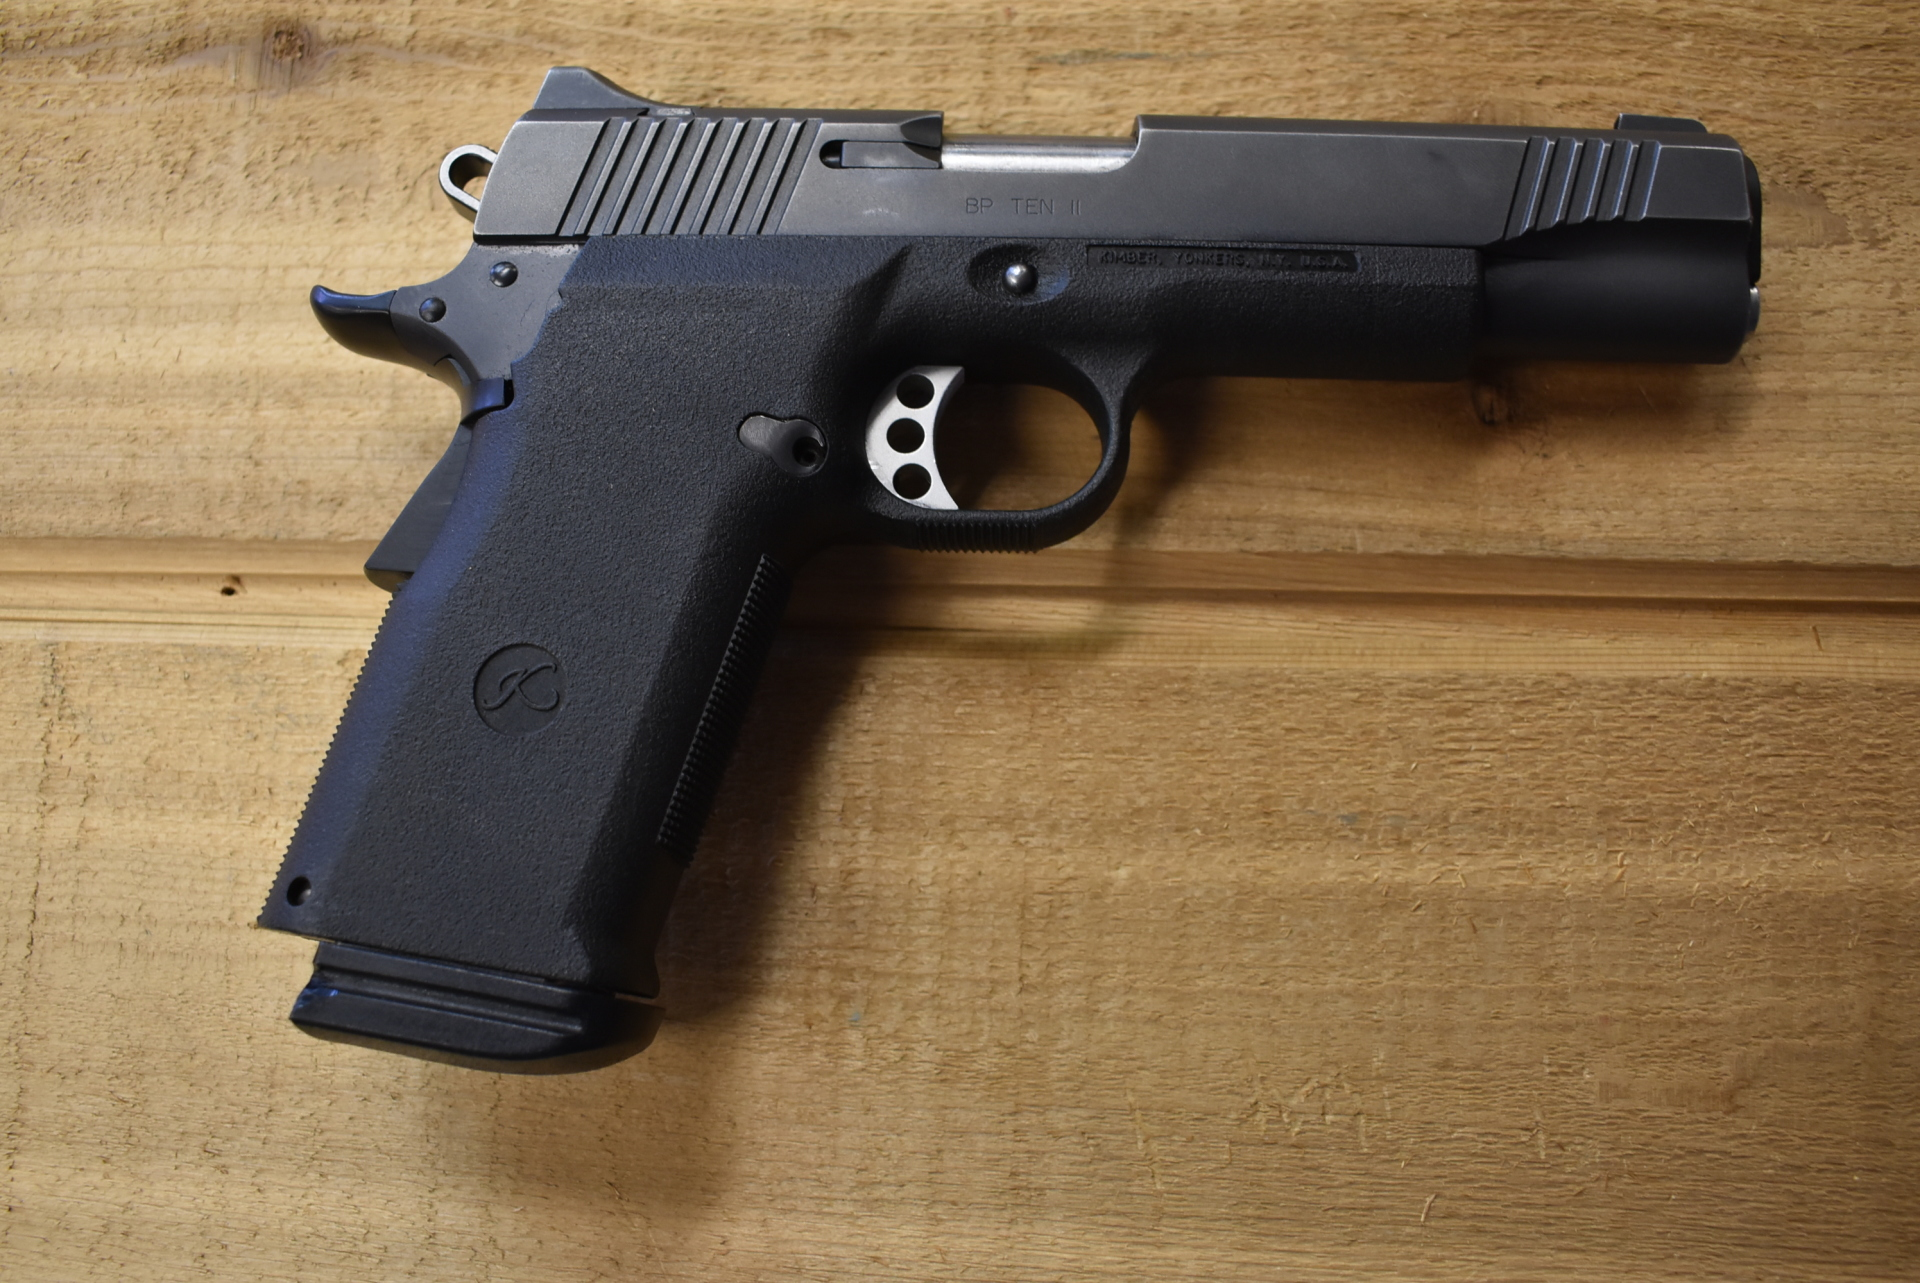 Kimber BP Ten II